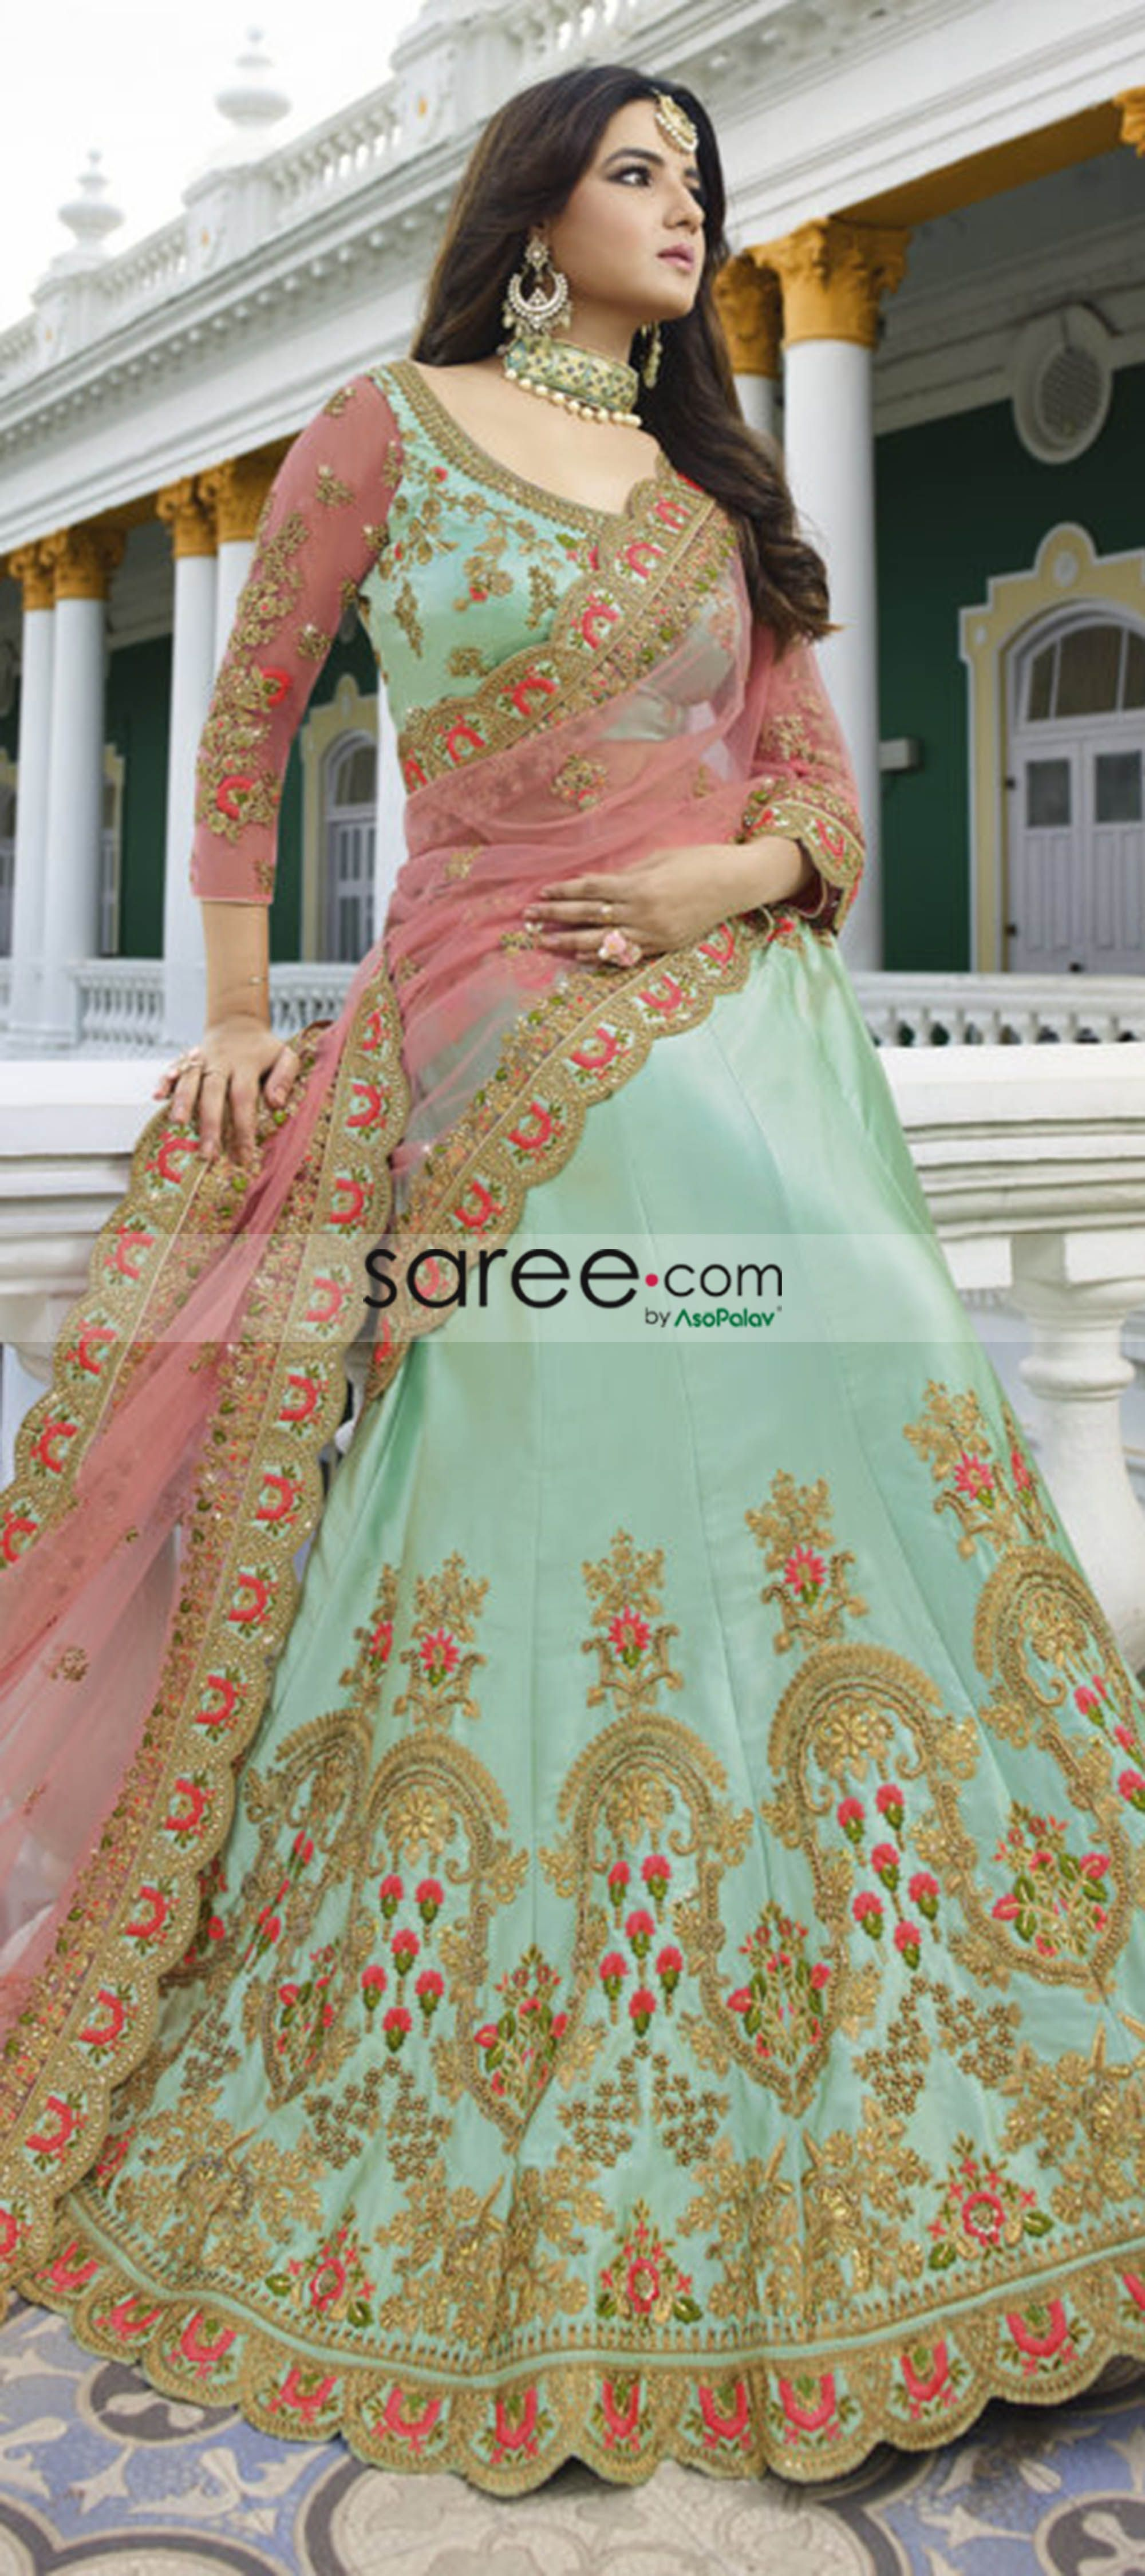 Bhasin Green Silk Designer Lehenga Choli With Zari Embroidery Dressing Ideas for a Ravishing Bride  Bridal Dreams - Look Your Best on Your D Day Mesmerizing Lehenga Cholis for a Ravishing Bride..  We bring you bewitching outfits for your special day - dazzle on your main ceremony or wear these for your pre-wedding functions or recep